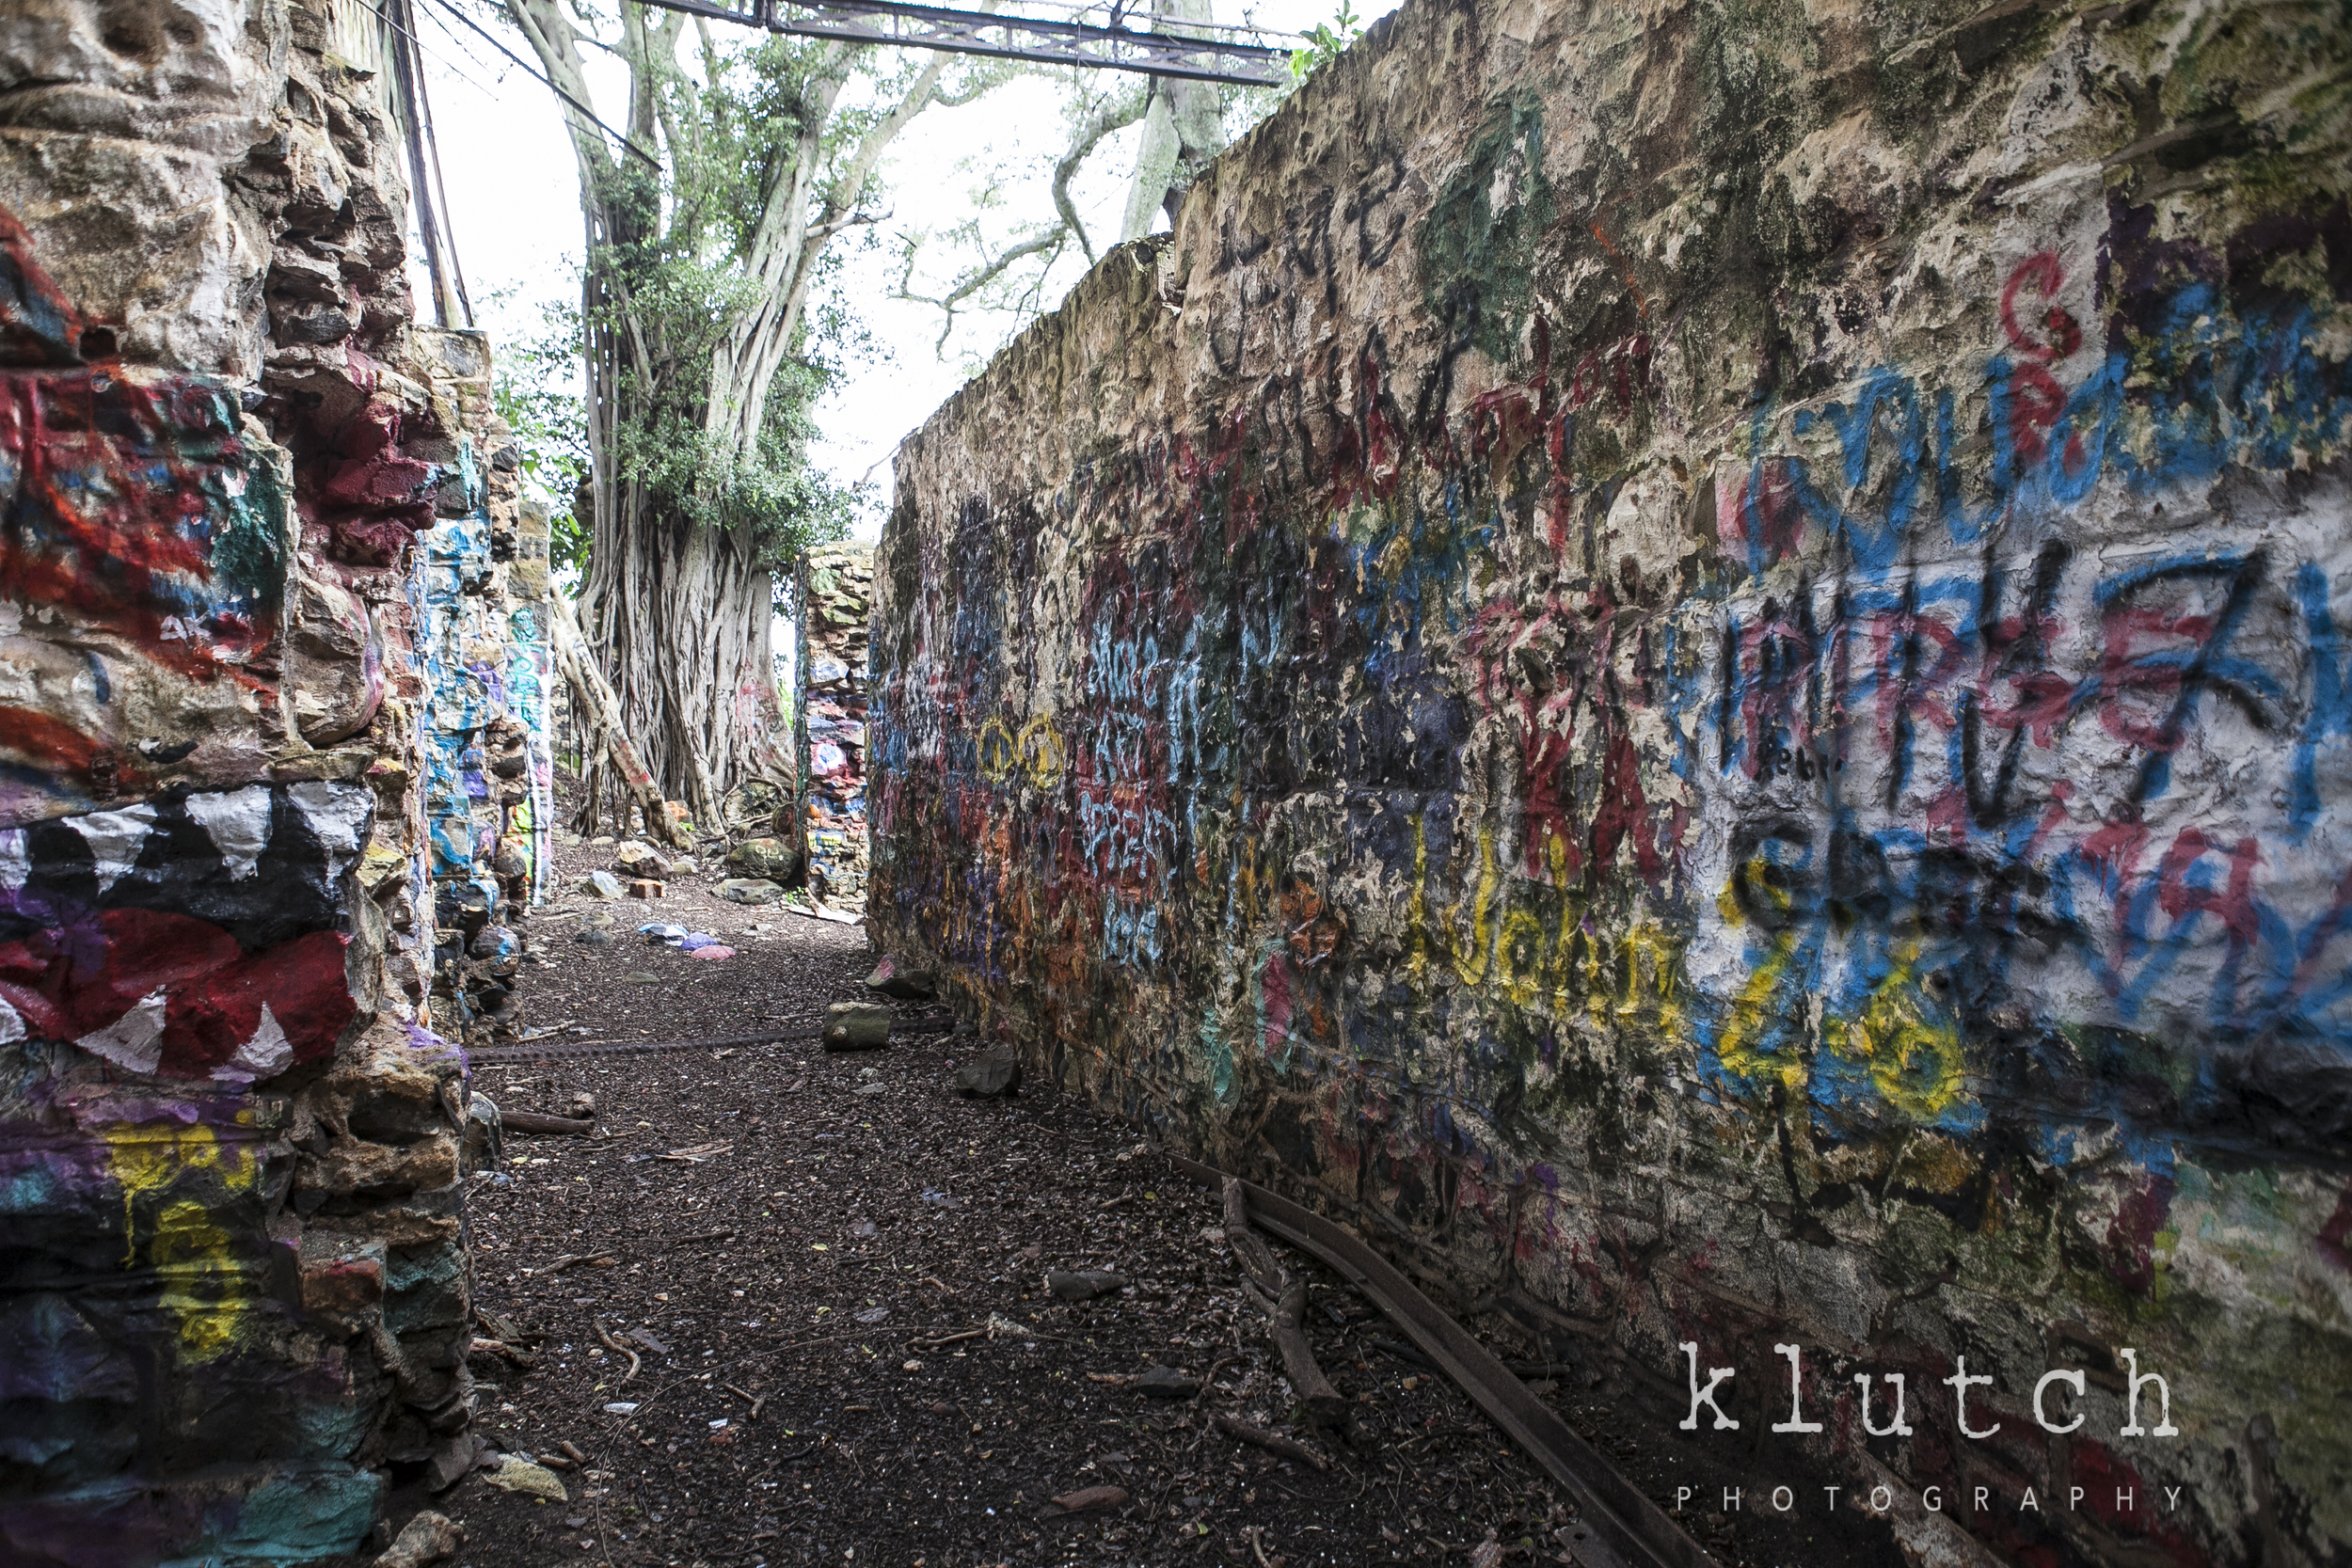 Klutch photography, maui, paia, abandoned building, abandoned ruins, vancouver family photographer, life unscripted-0816.jpg